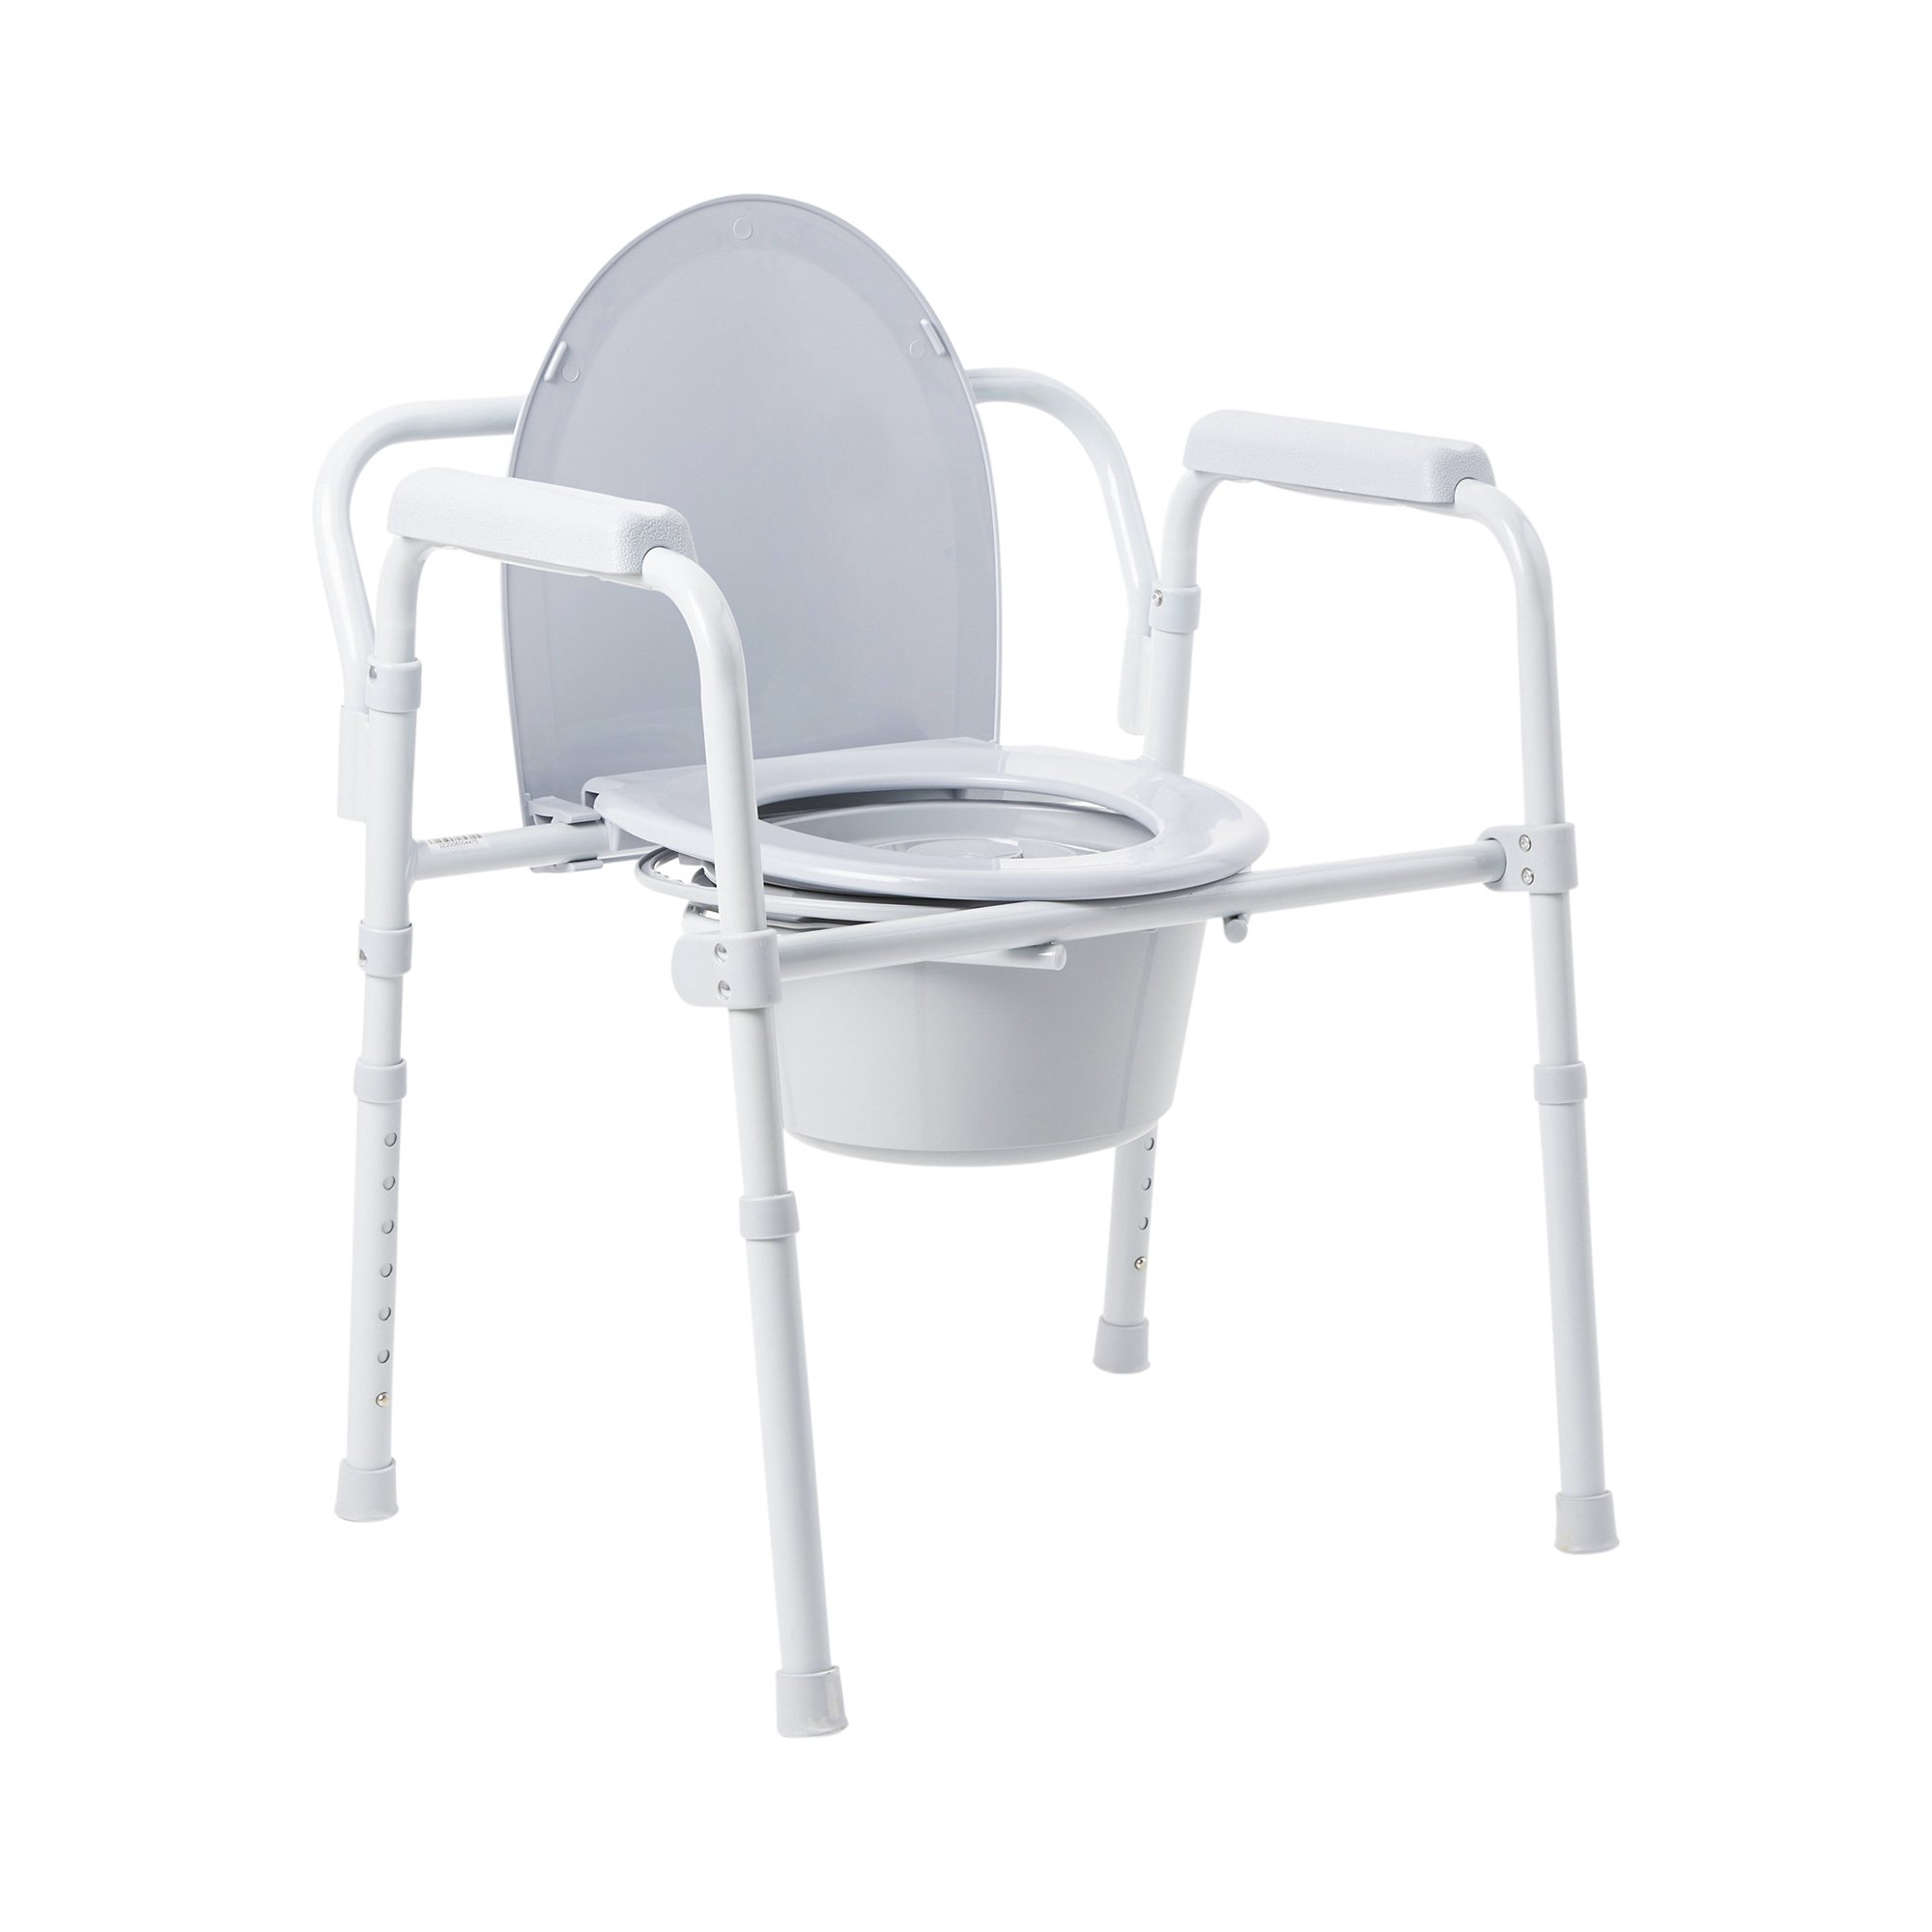 """McKesson Fixed Arm Steel Folding Commode Chair, 146-11148-4, 13.5"""" - Case of 4"""